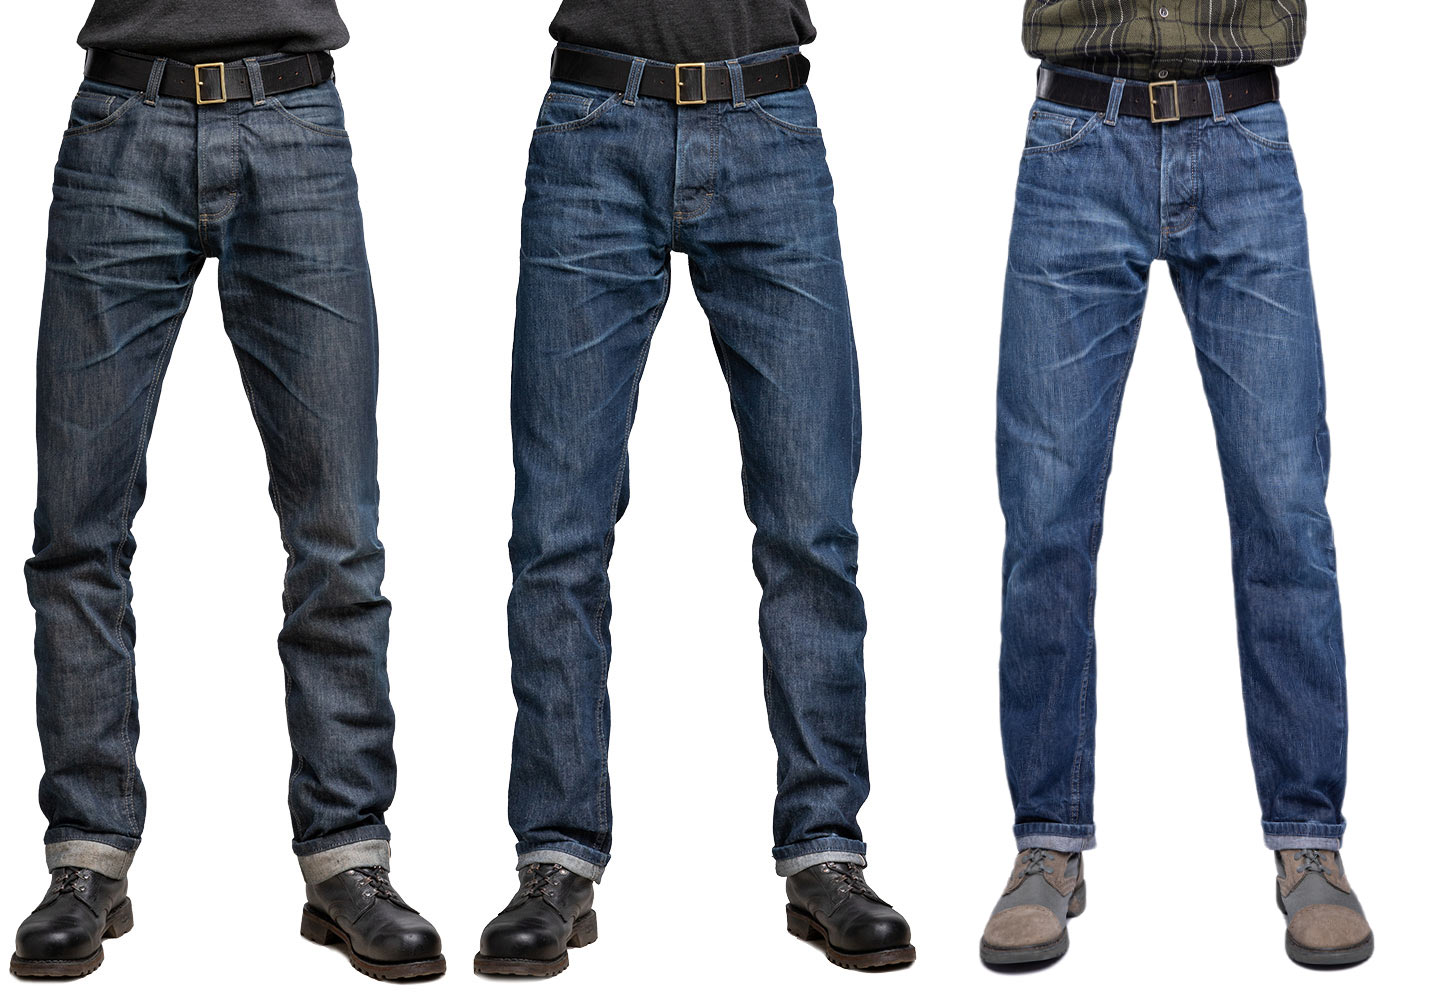 Three jeans in a row on a model. On the left the darkest colored and on the right the lightest ones.